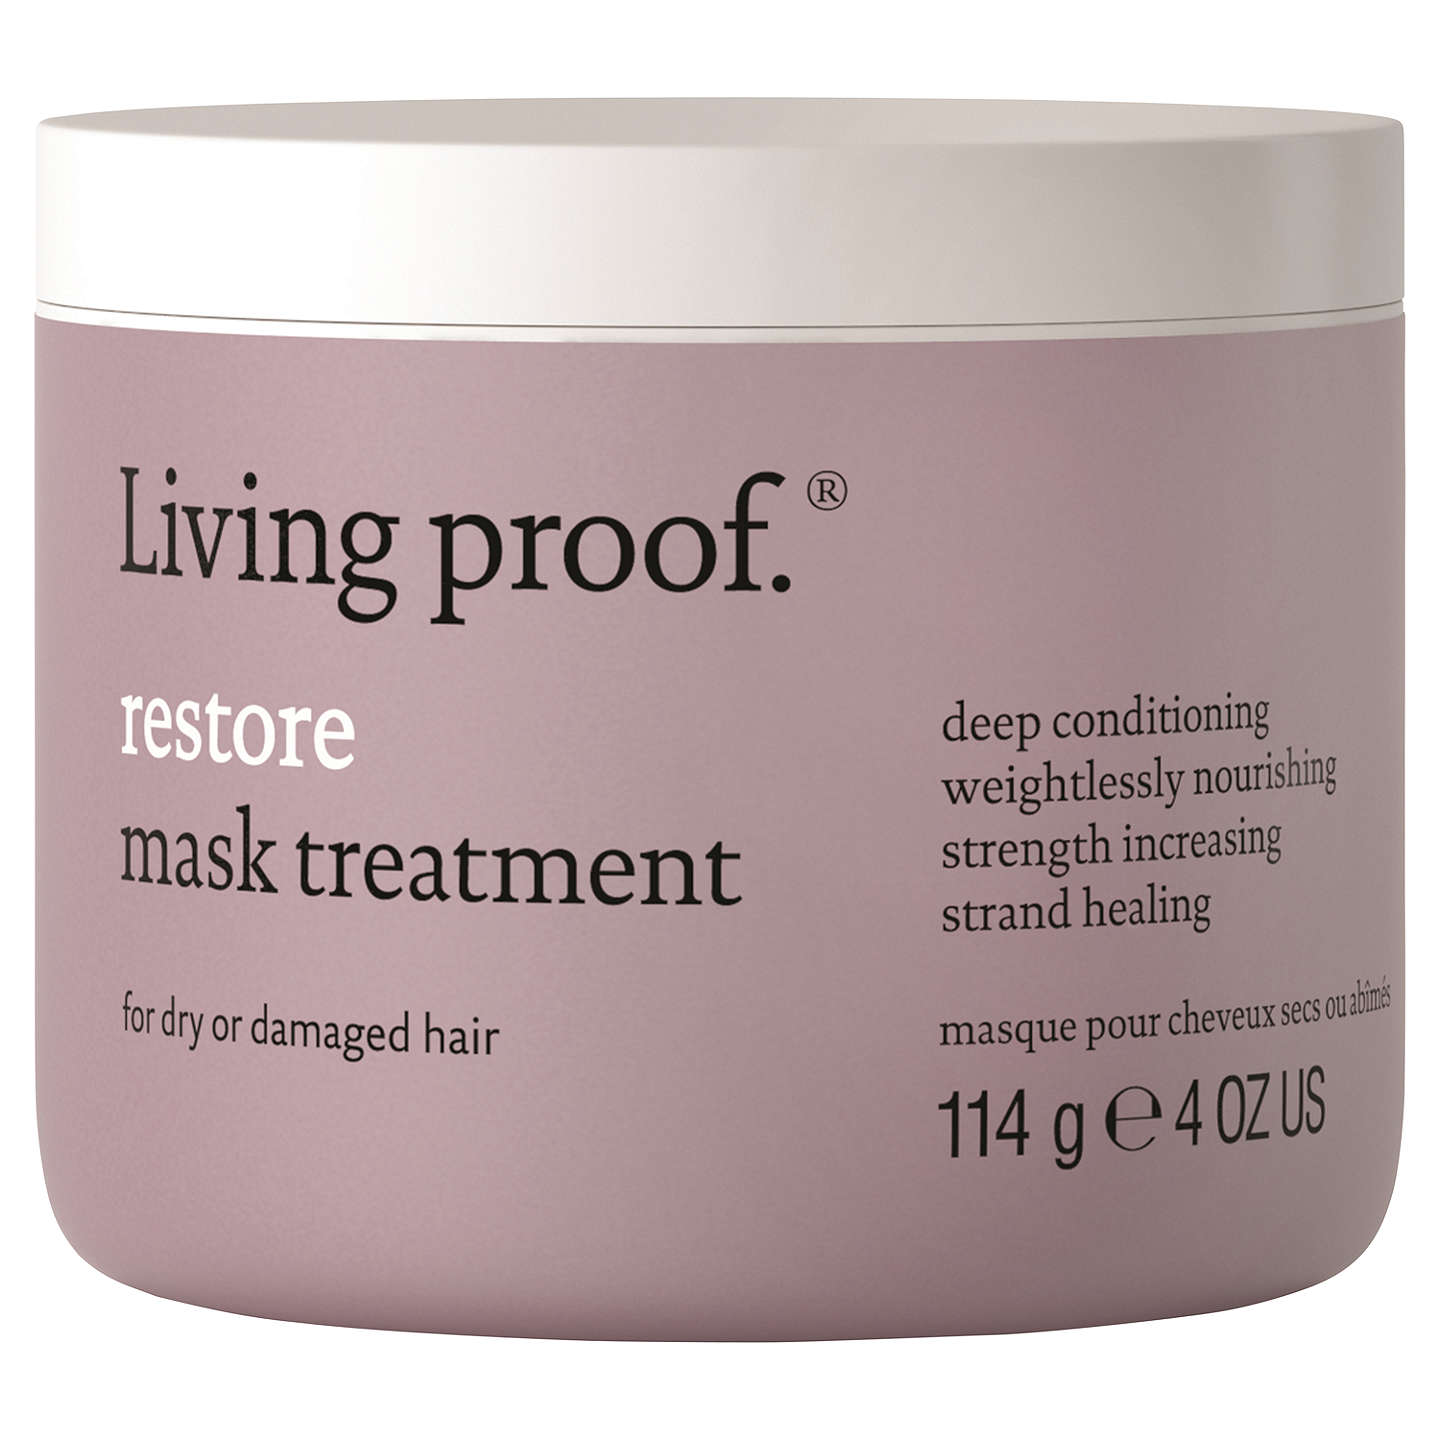 Living Proof Restore Mask Treatment, 114g by Living Proof